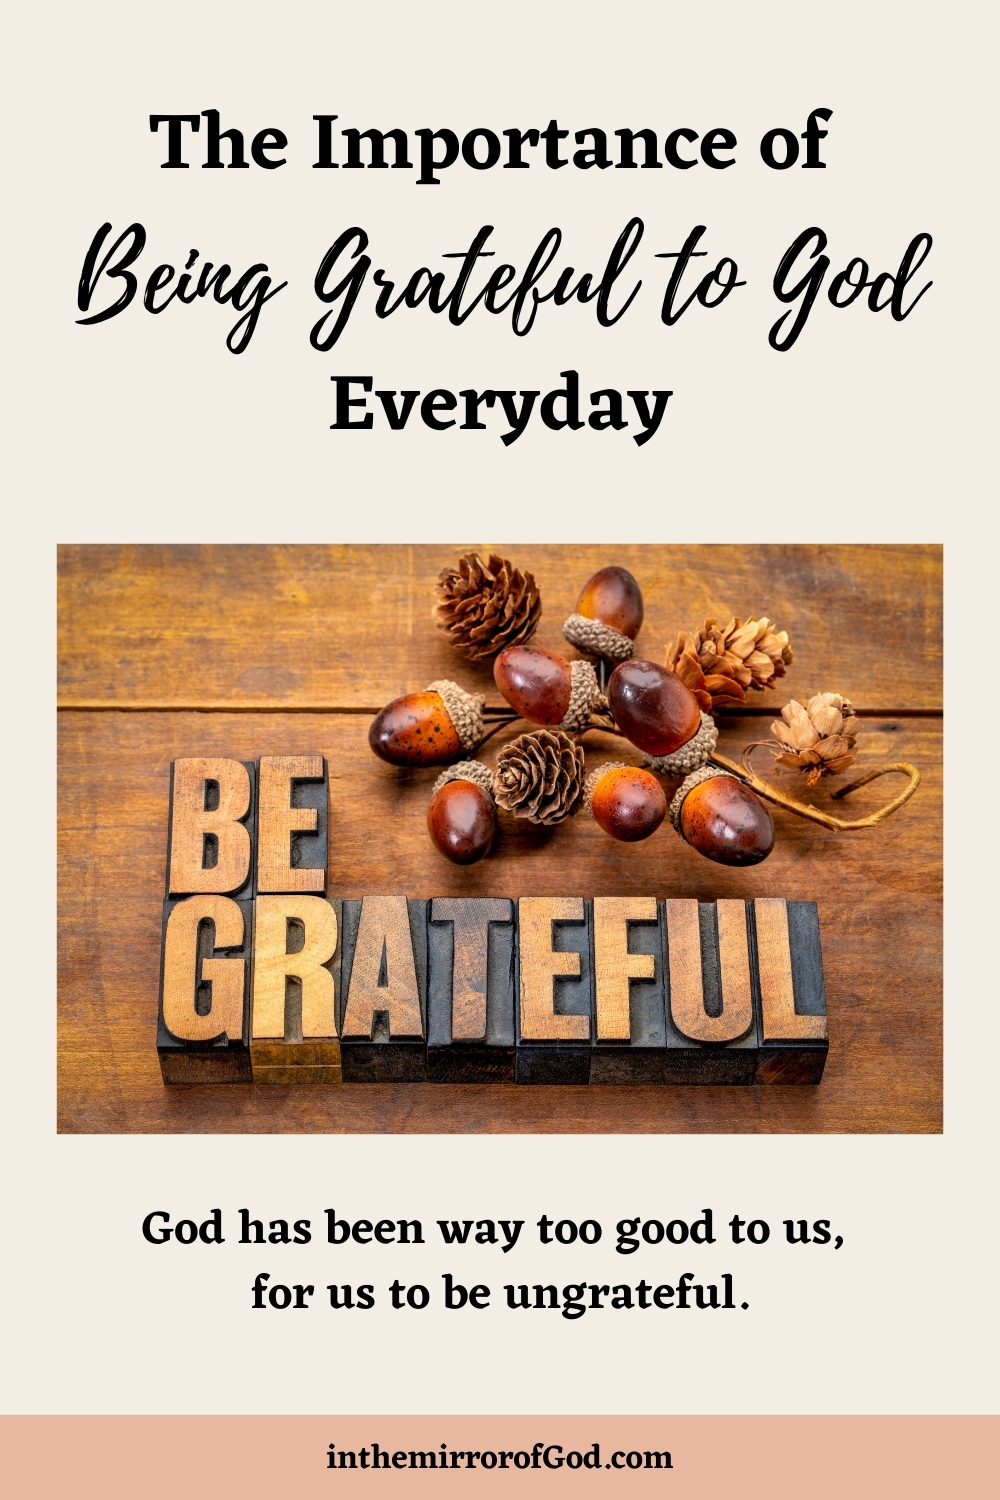 The Importance of Being Grateful to God Every Day